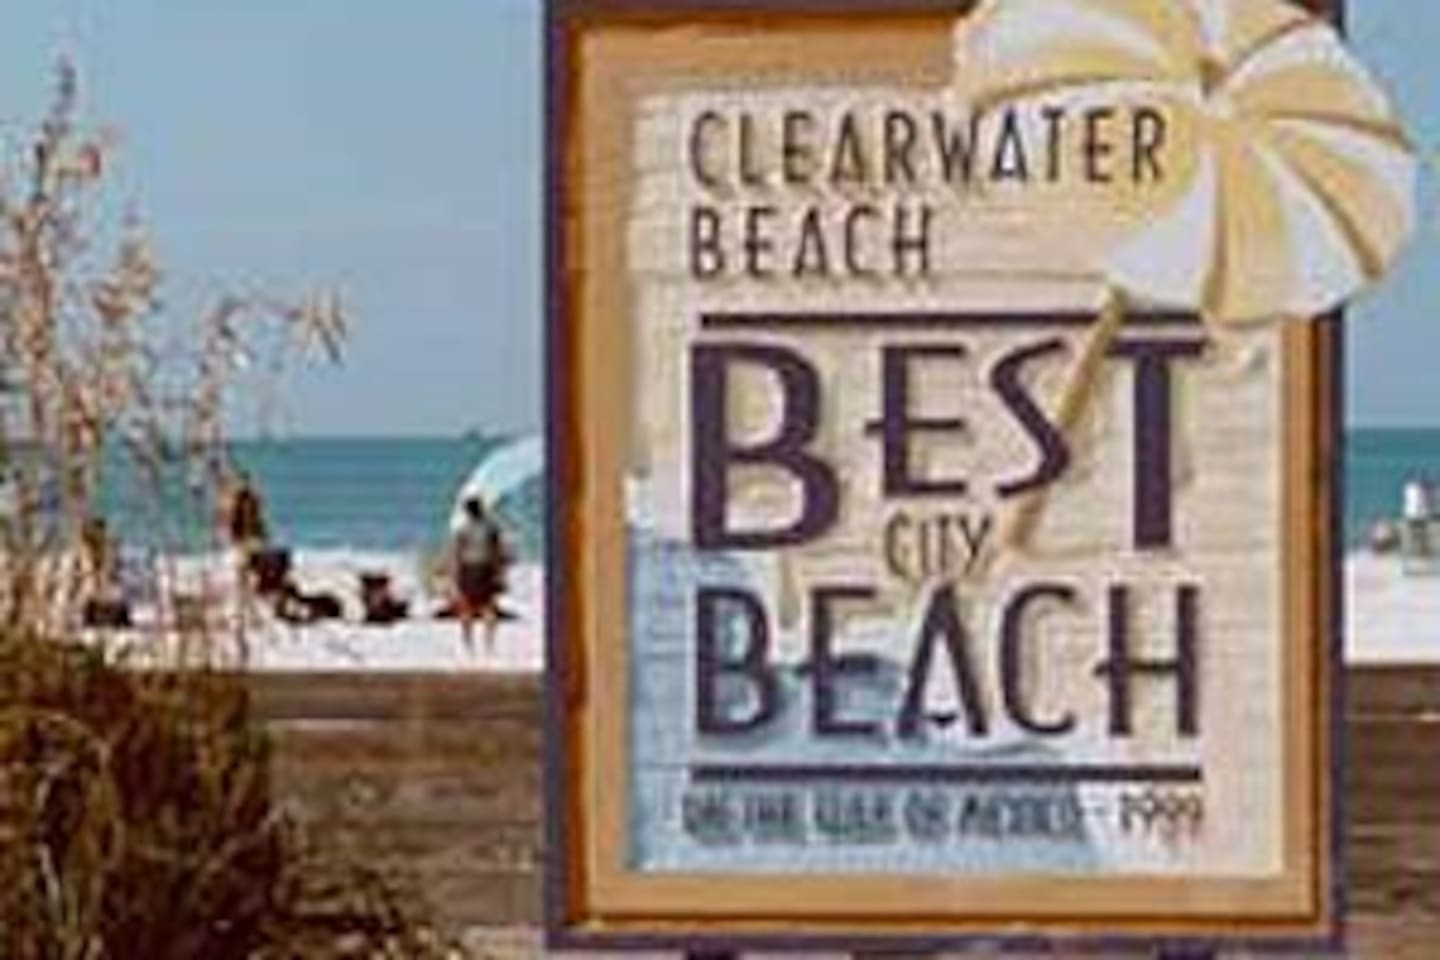 Voted Best Beach again for 2018 by Trip Advisor!!!